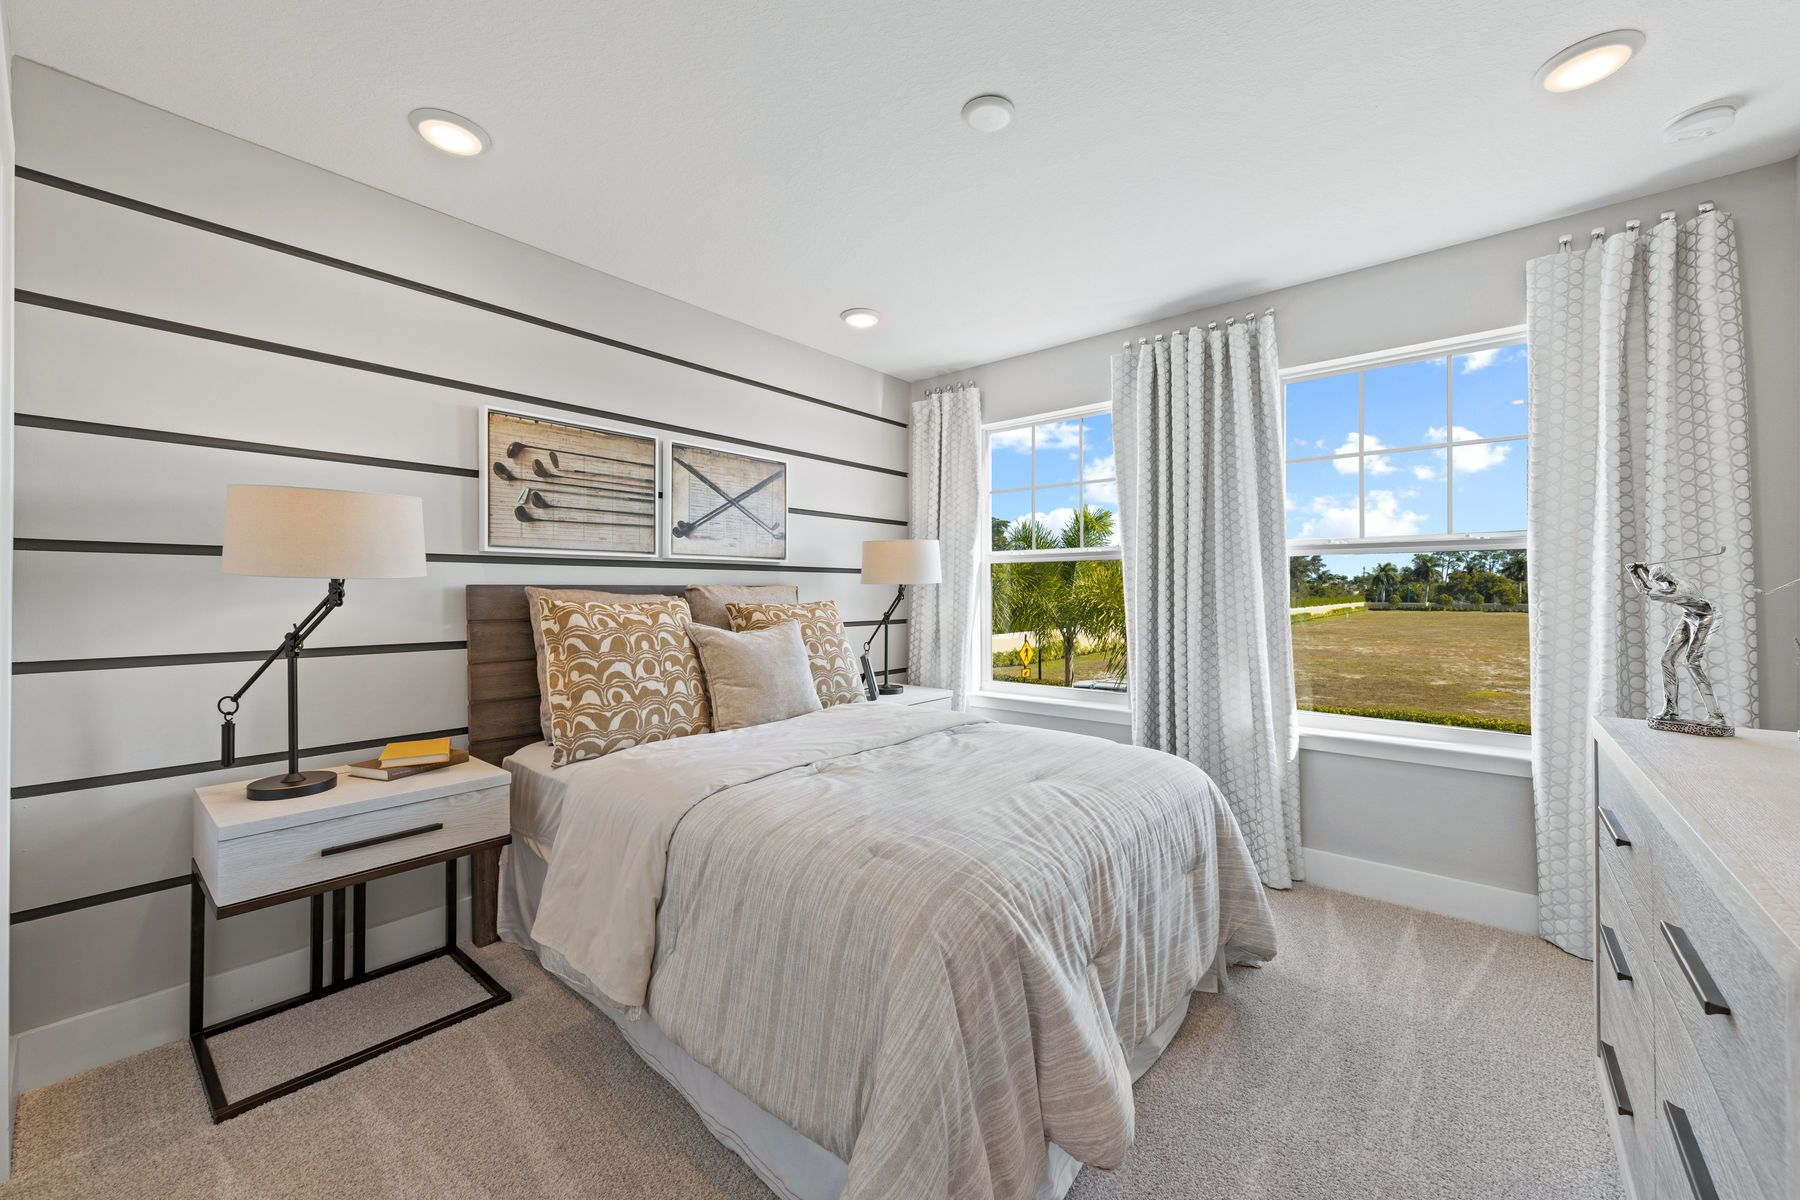 Bedroom featured in the Sandbar By Mattamy Homes in Naples, FL